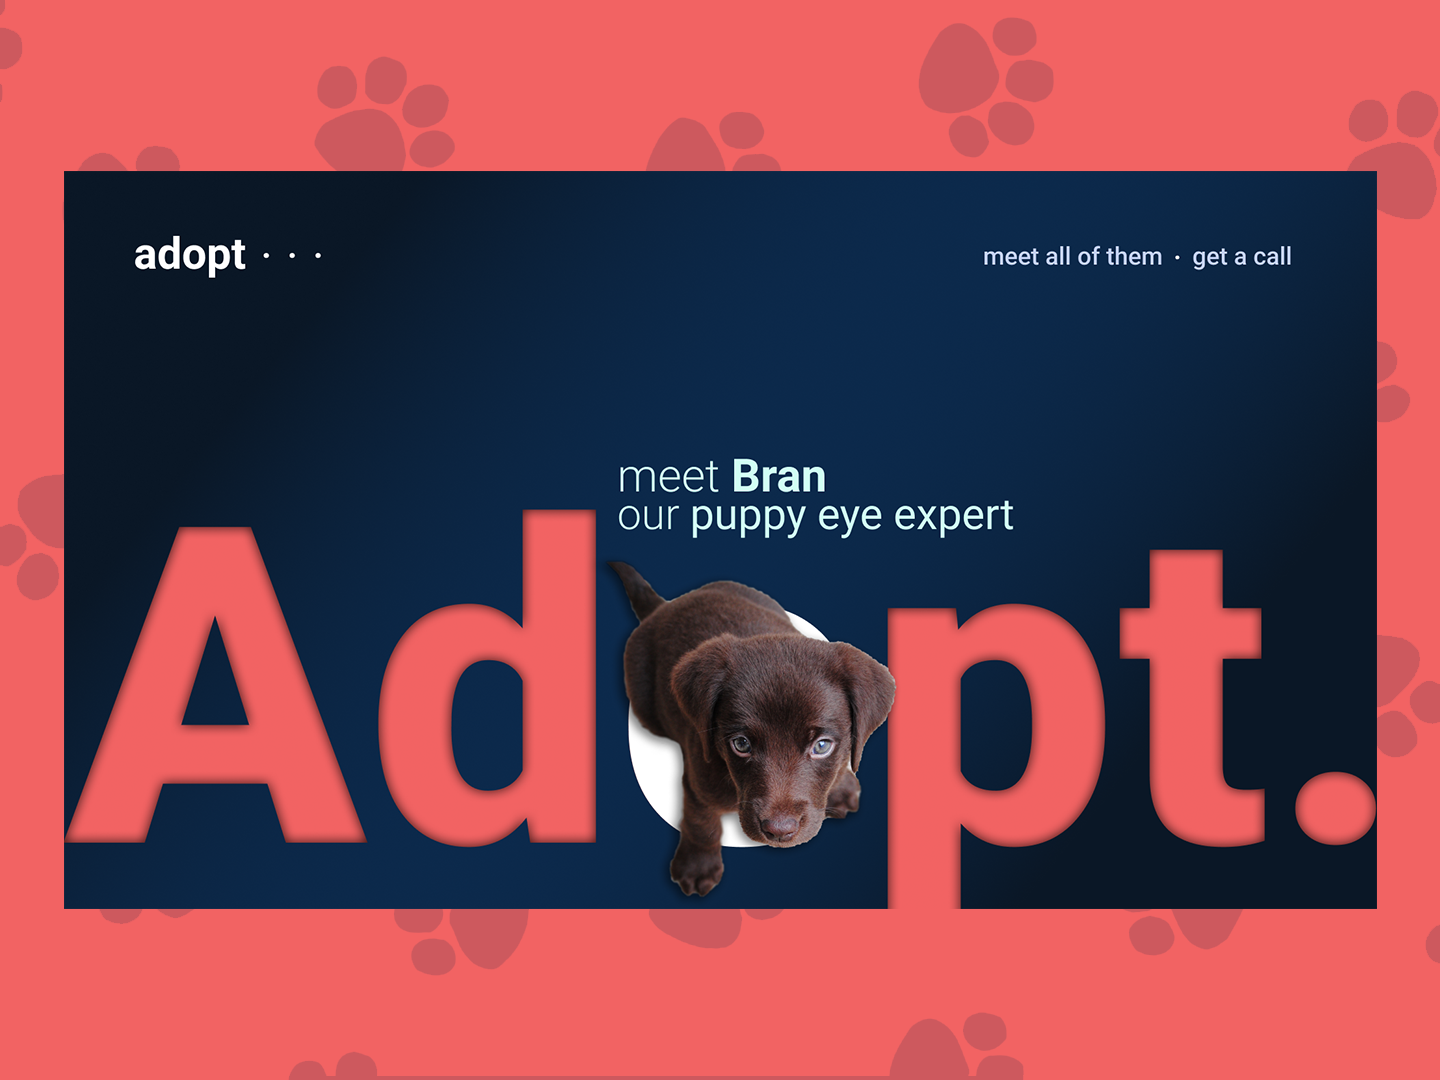 Adopt webdesign web adopt dog ui design animal